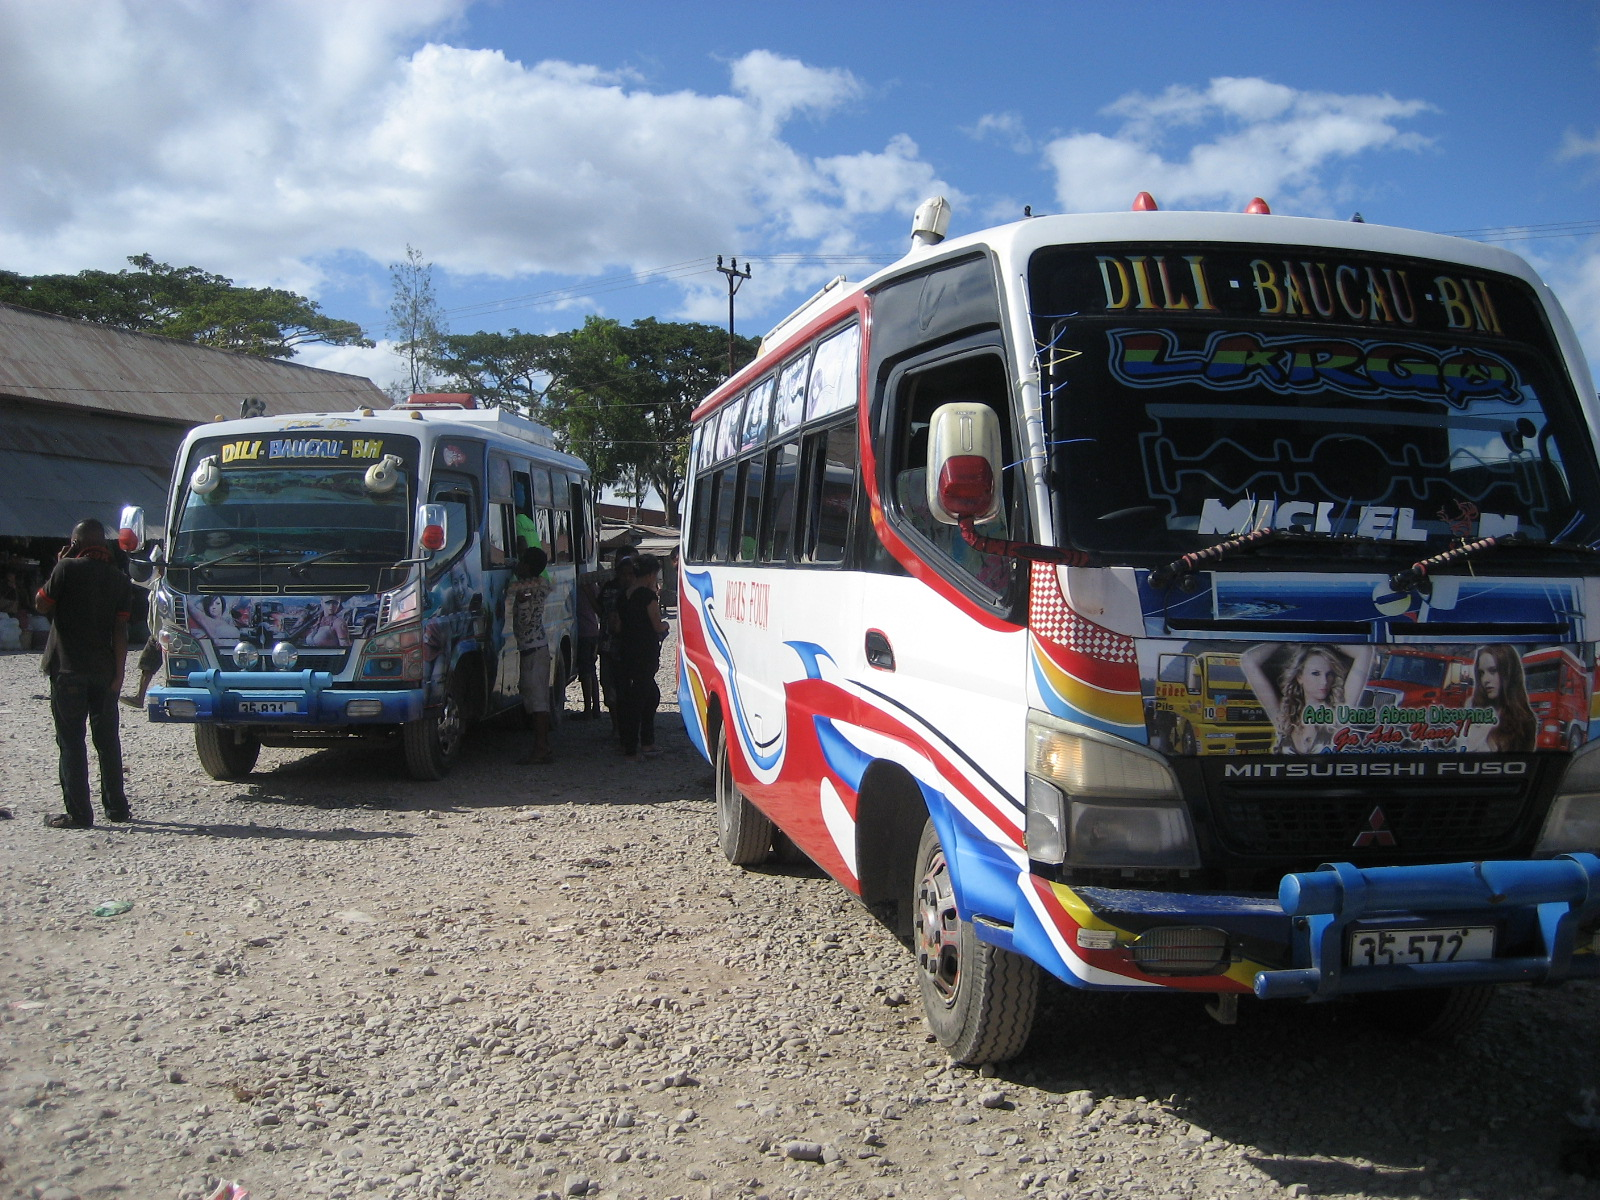 Mini buses at the bus station in Bacau, East Timor